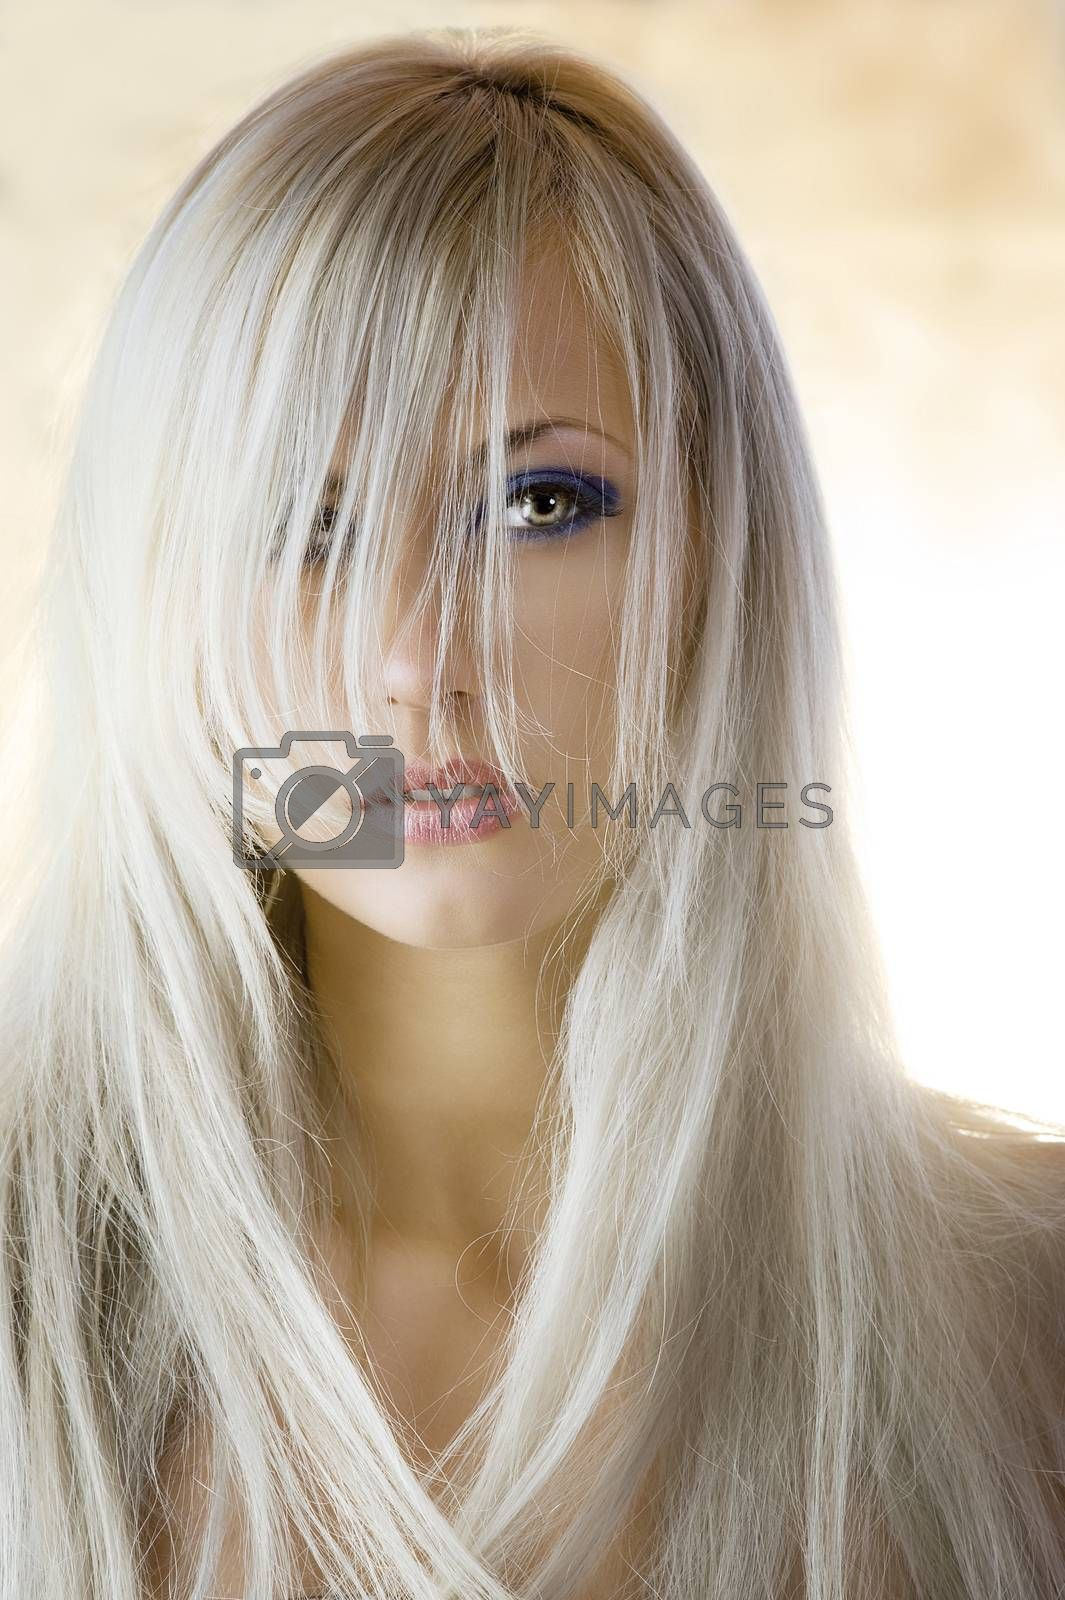 Royalty free image of beauty portrait by fotoCD